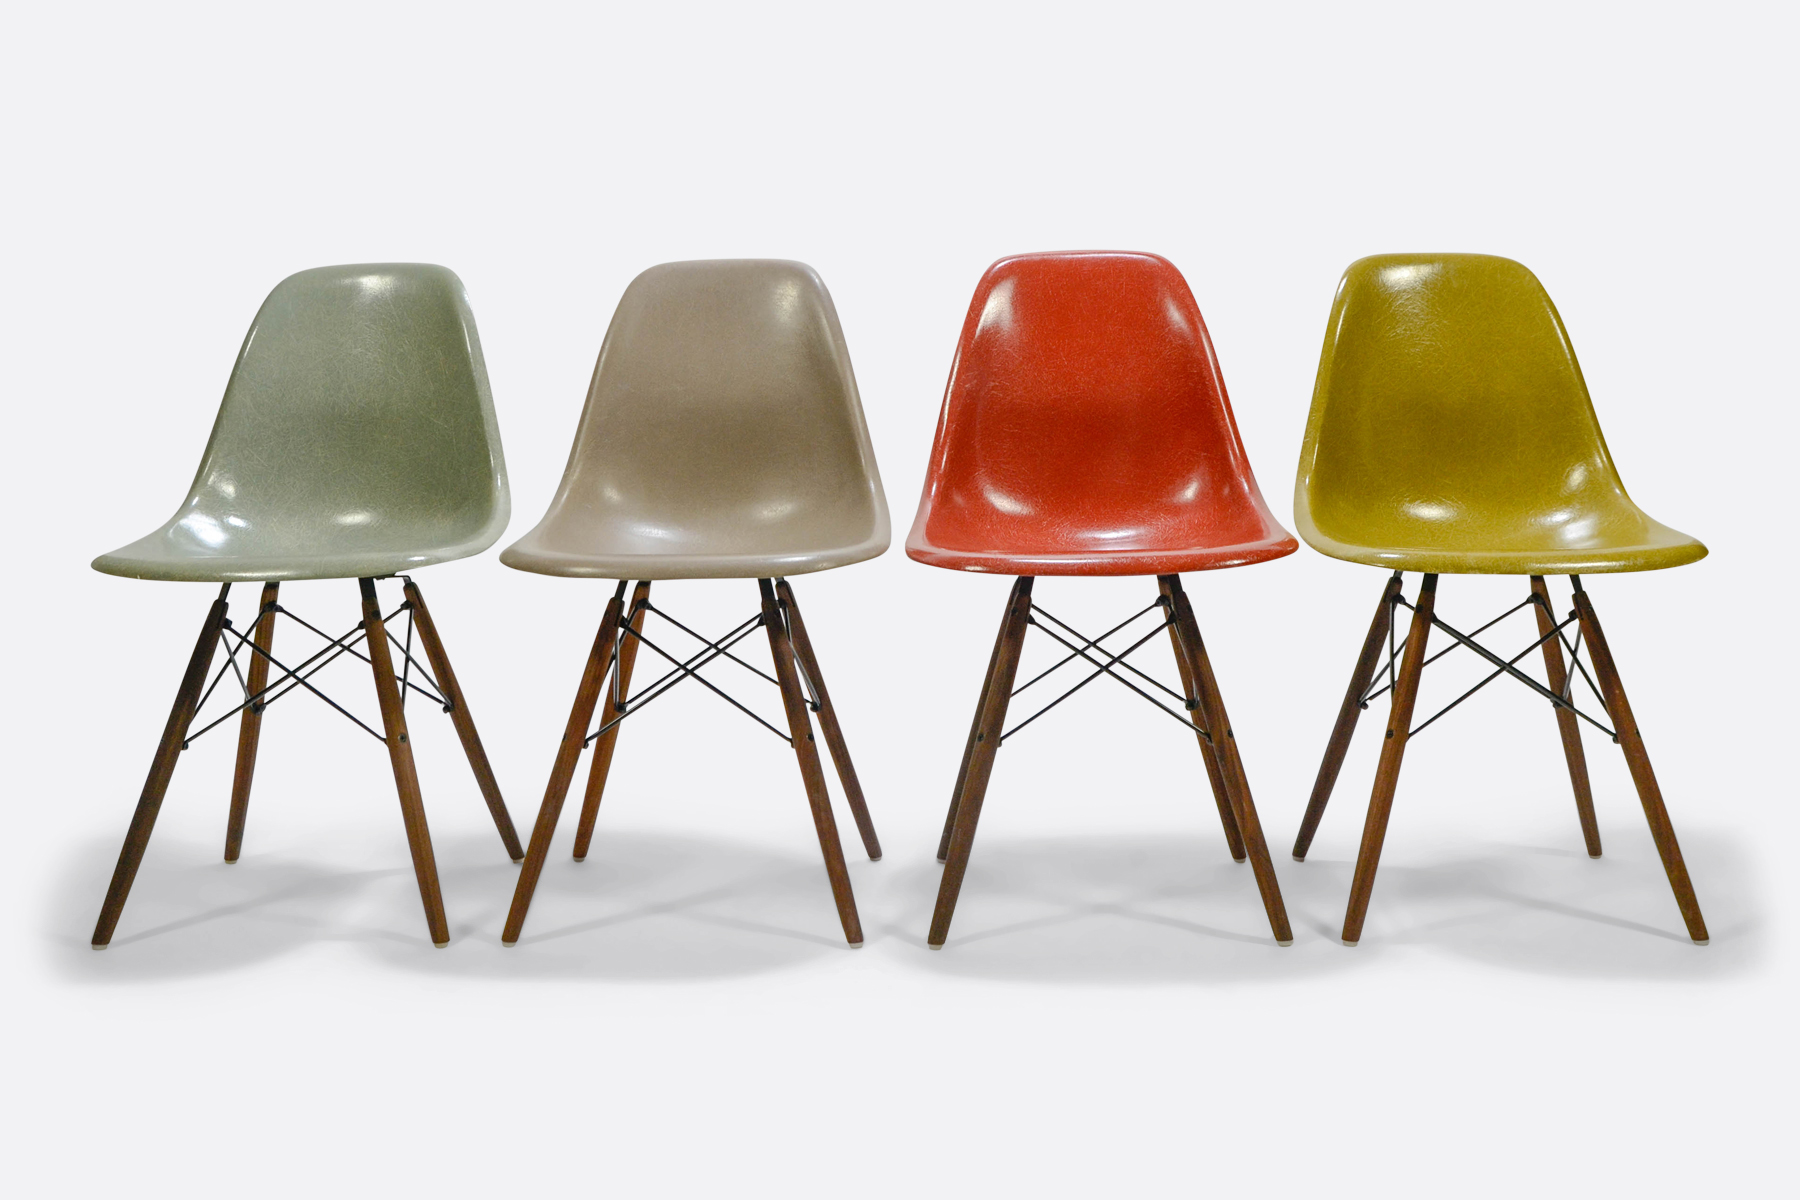 Eames DSW set of 4 Seafoam Green - Greige - Terracotta - Mustard1